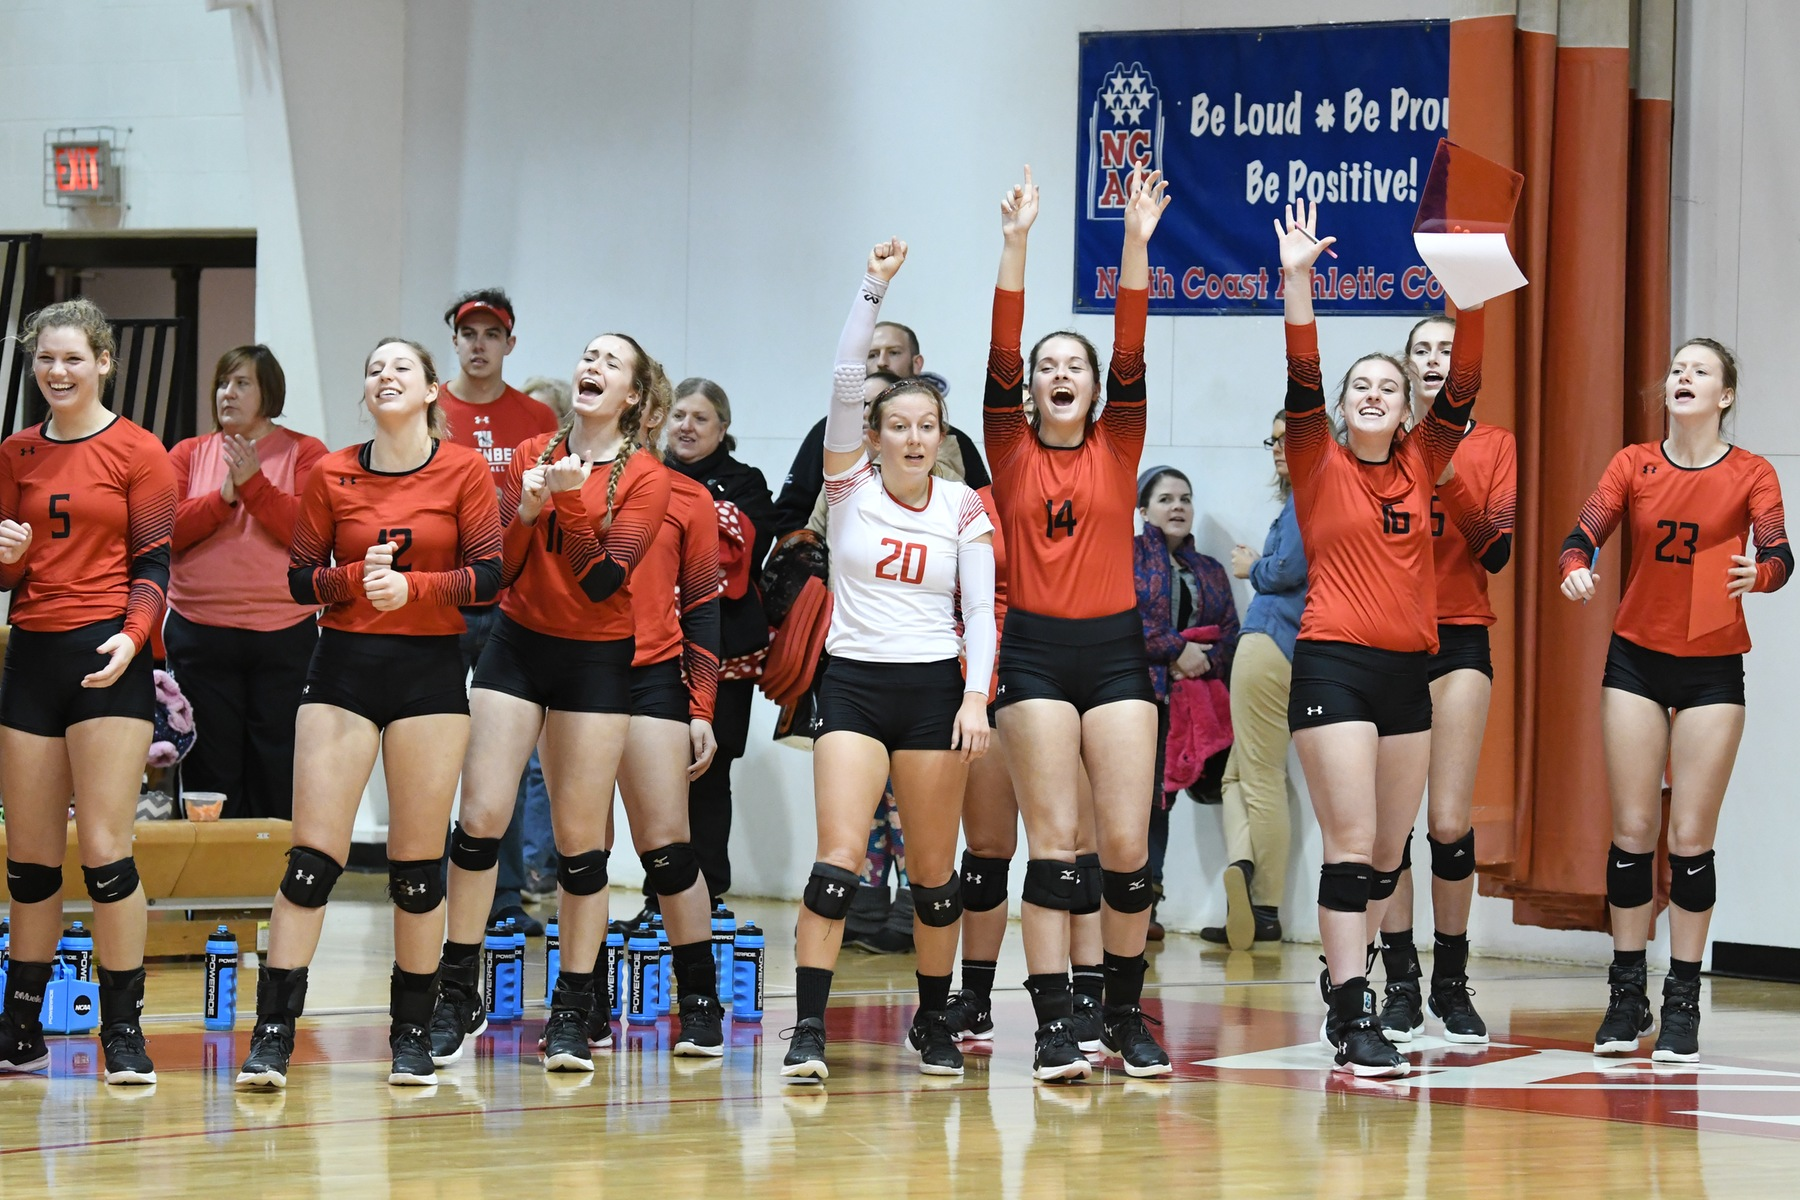 The third-ranked Wittenberg women's volleyball team wrapped up the regular season with a thrilling 3-2 come-from-behind win over Earlham on Tuesday night